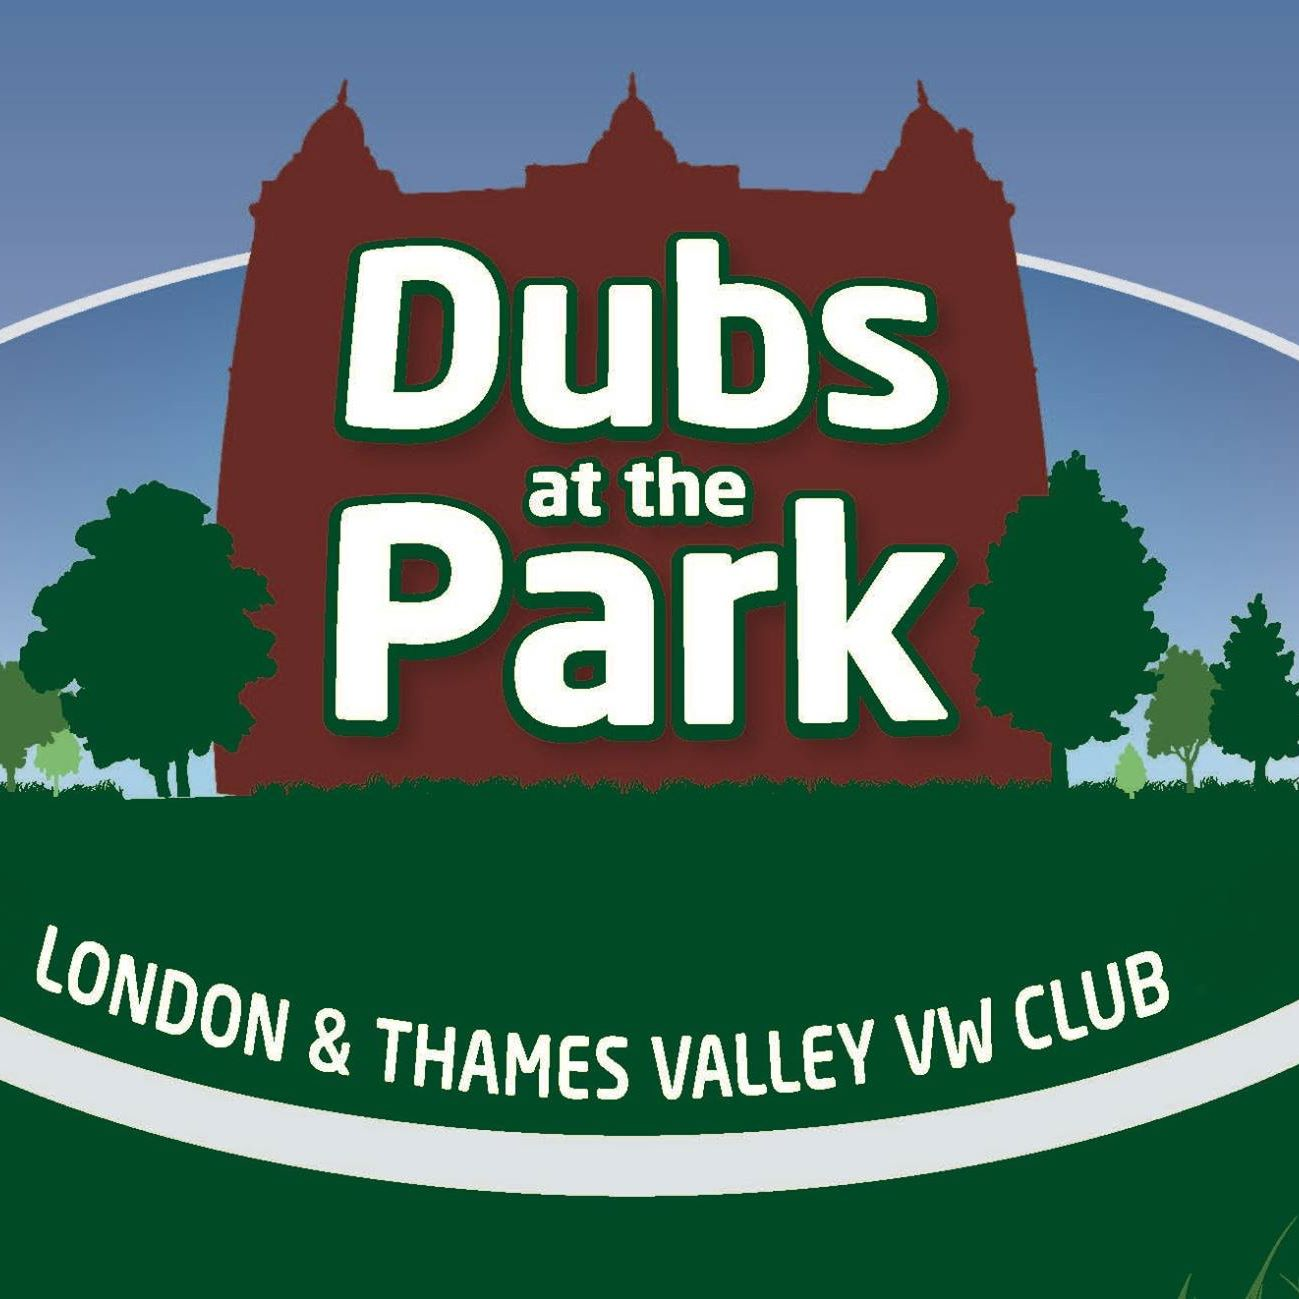 Dubs at the Park